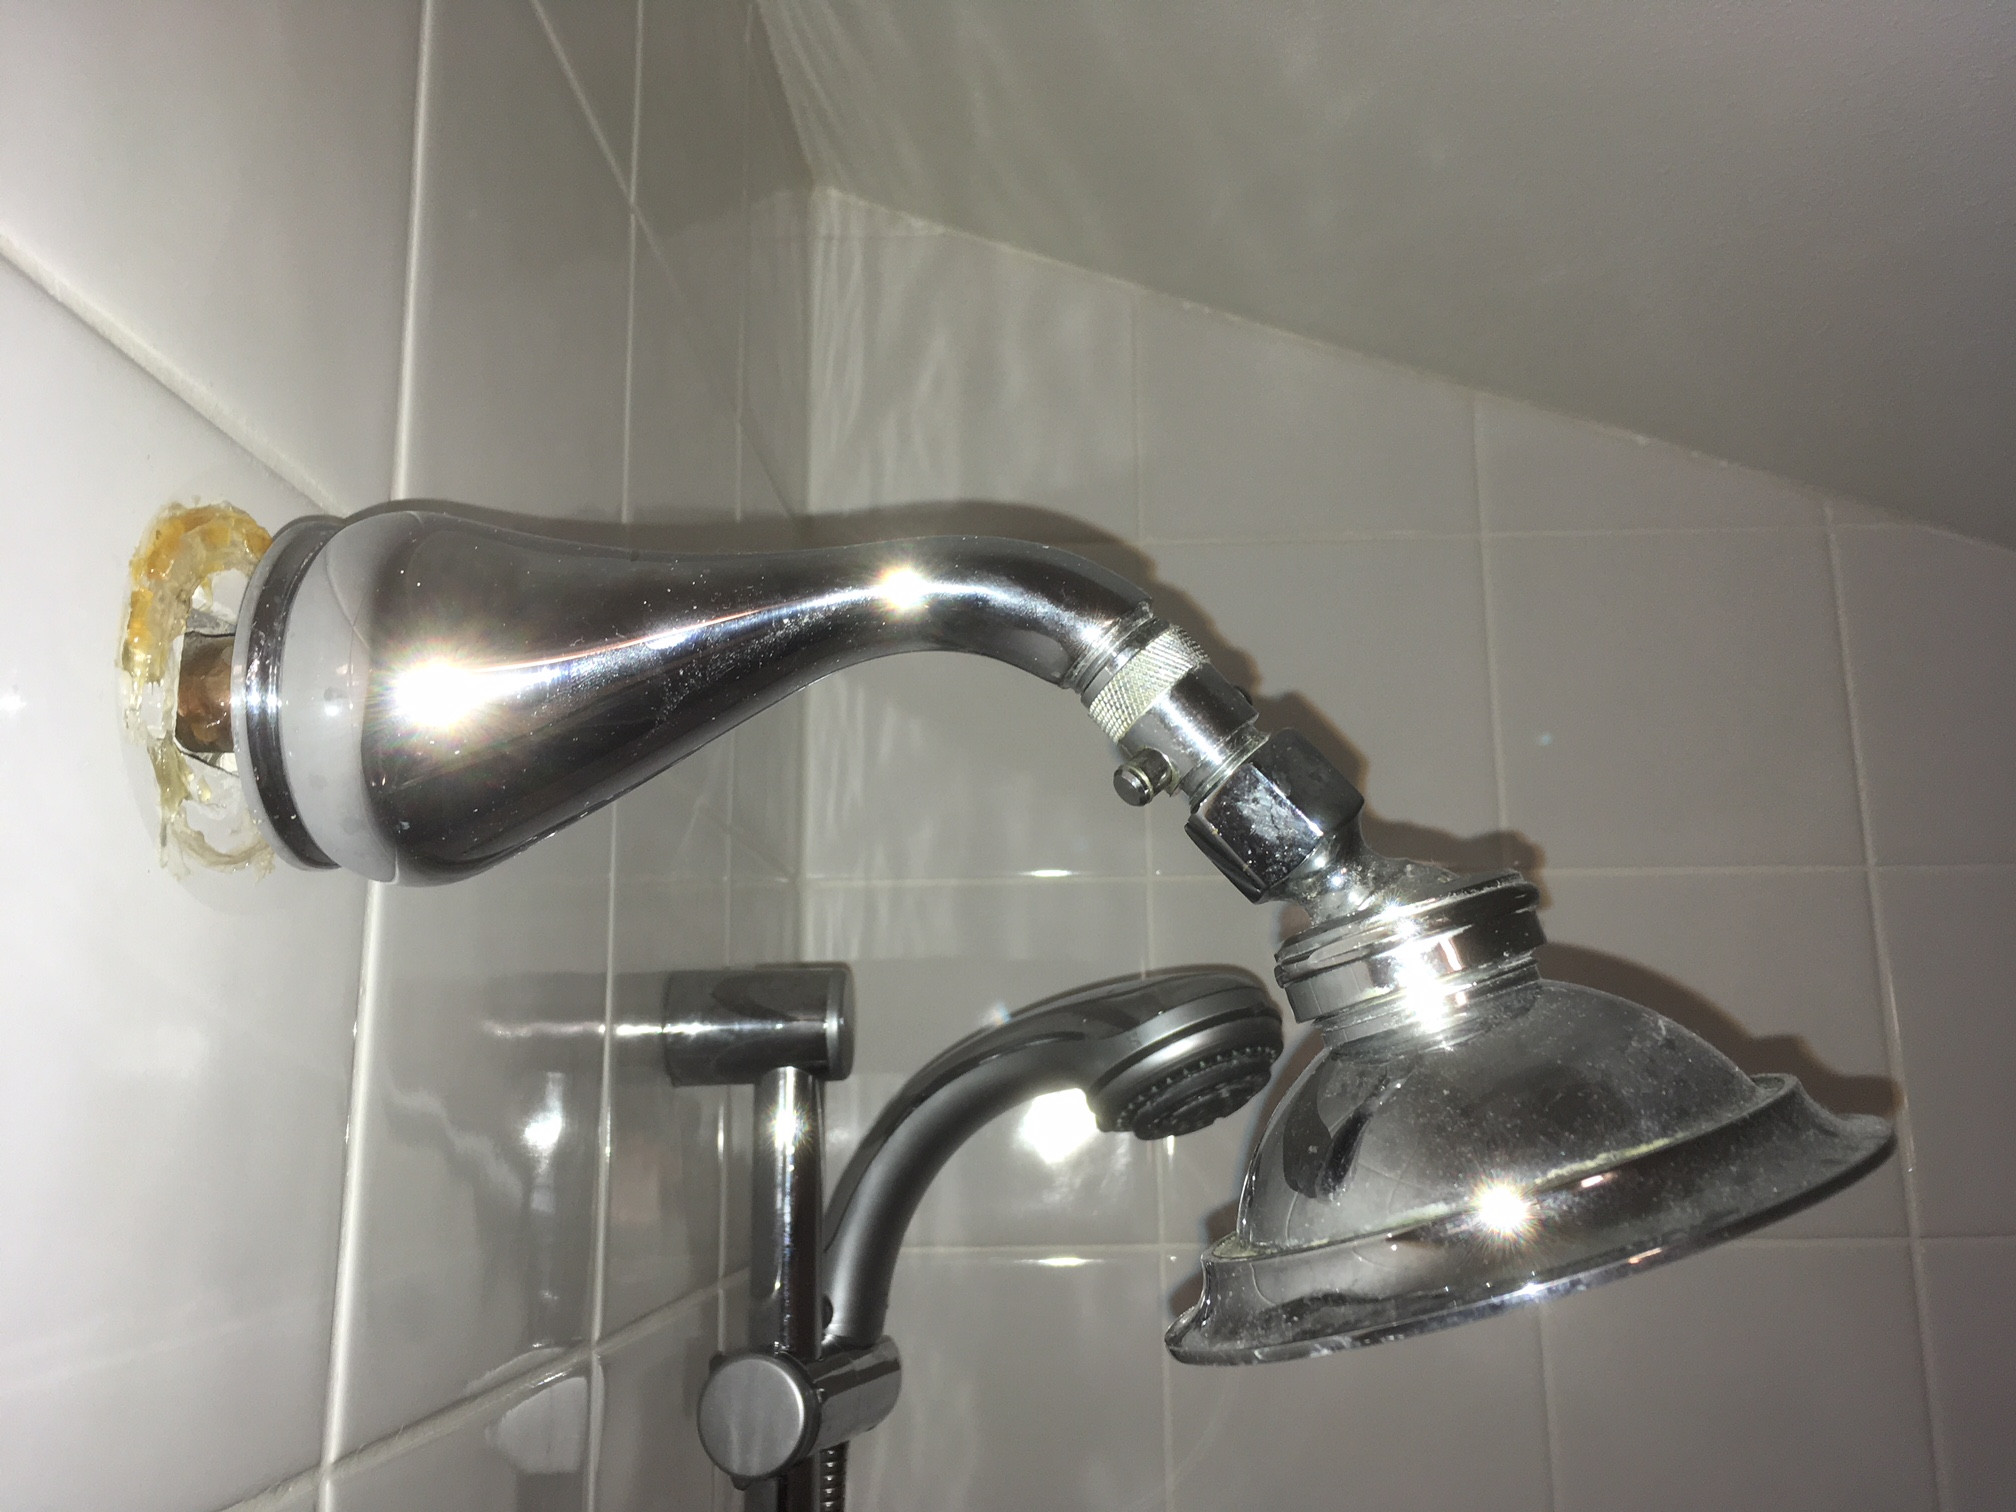 Shower Arm Thread Sticking Out Of Wall Is Too Long Home Improvement Stack Exchange